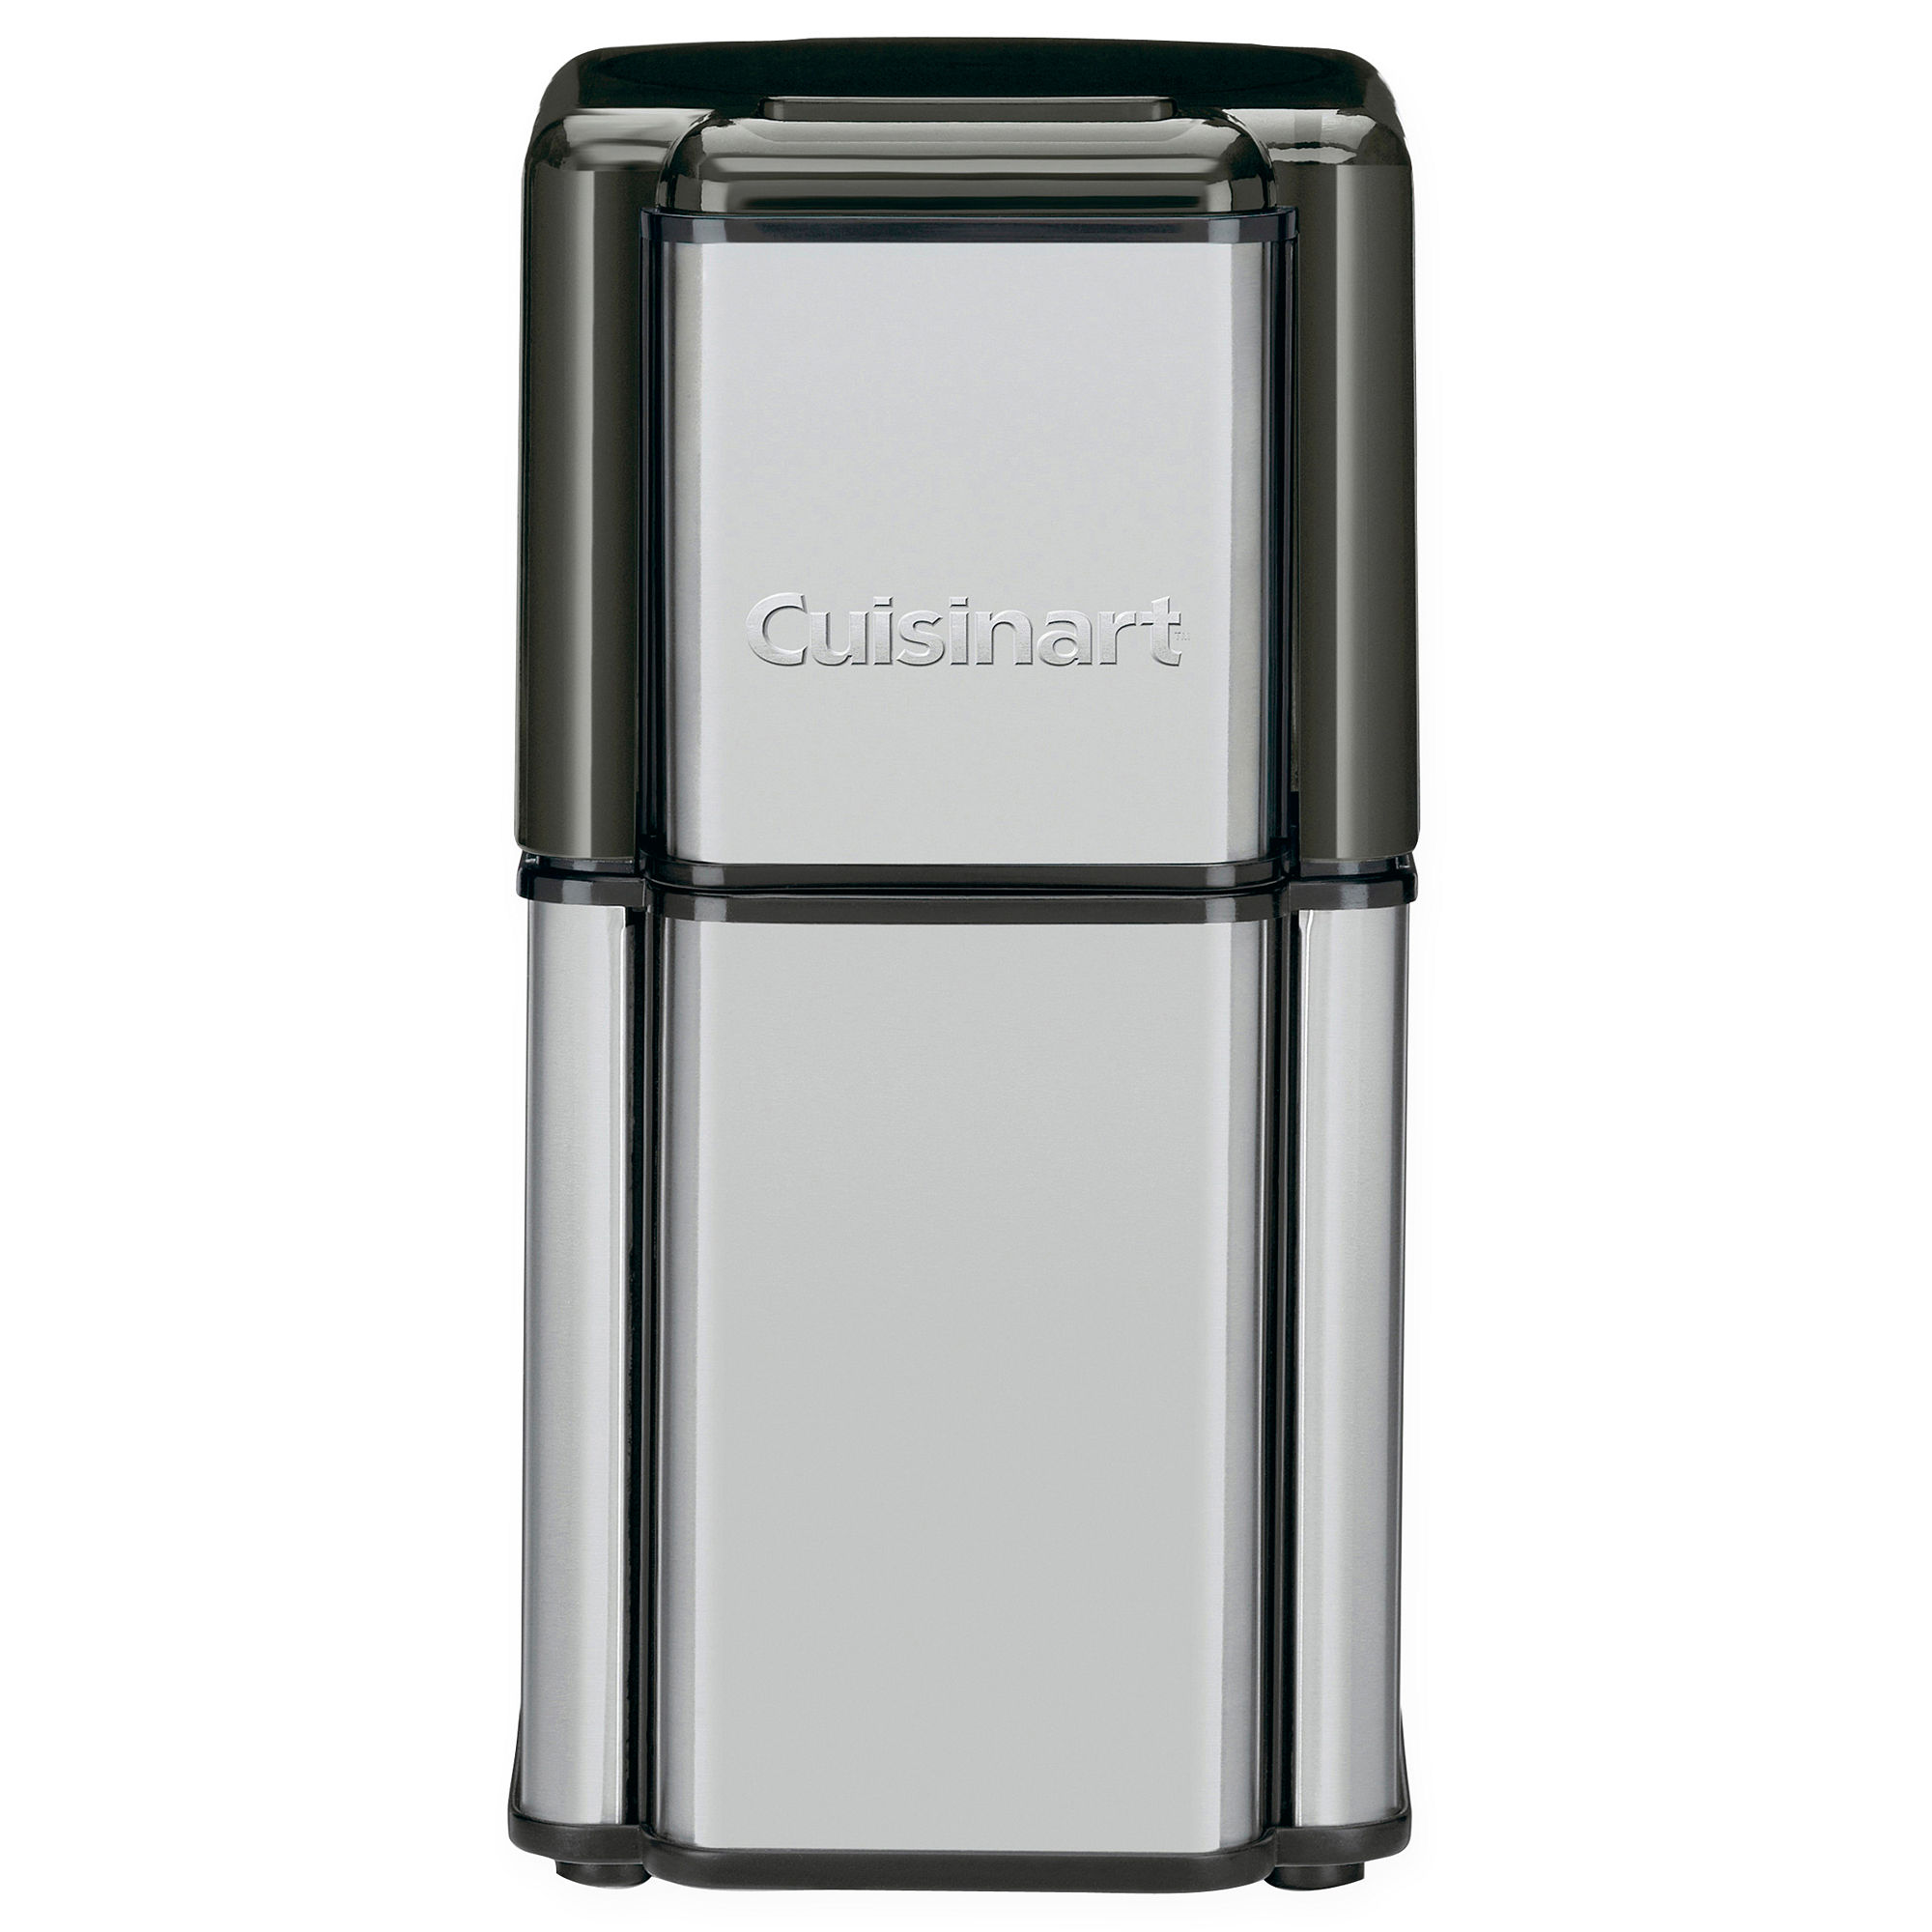 Cuisinart Grind Central Coffee Grinder